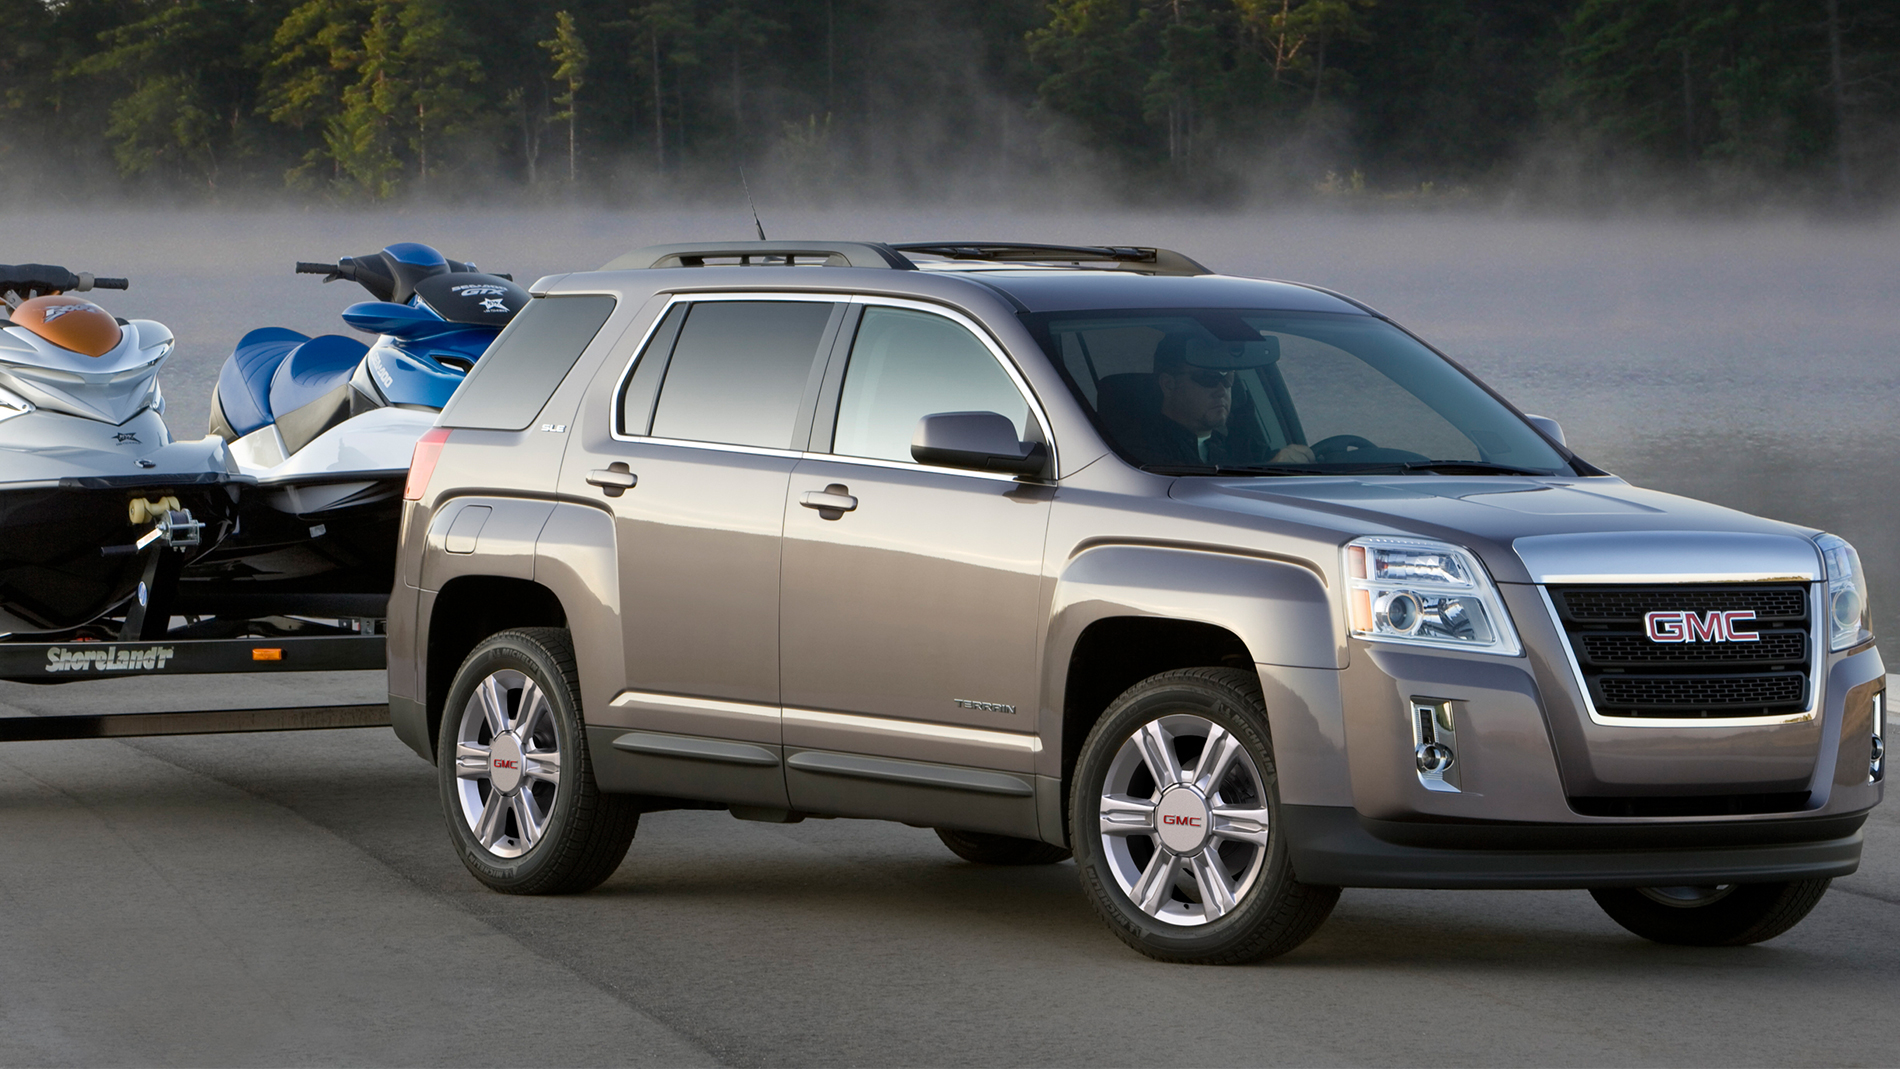 Best gmc terrain deals   5 hour energy coupon 2018 Learn How to Save on Your New Car With the Best GMC Rebates